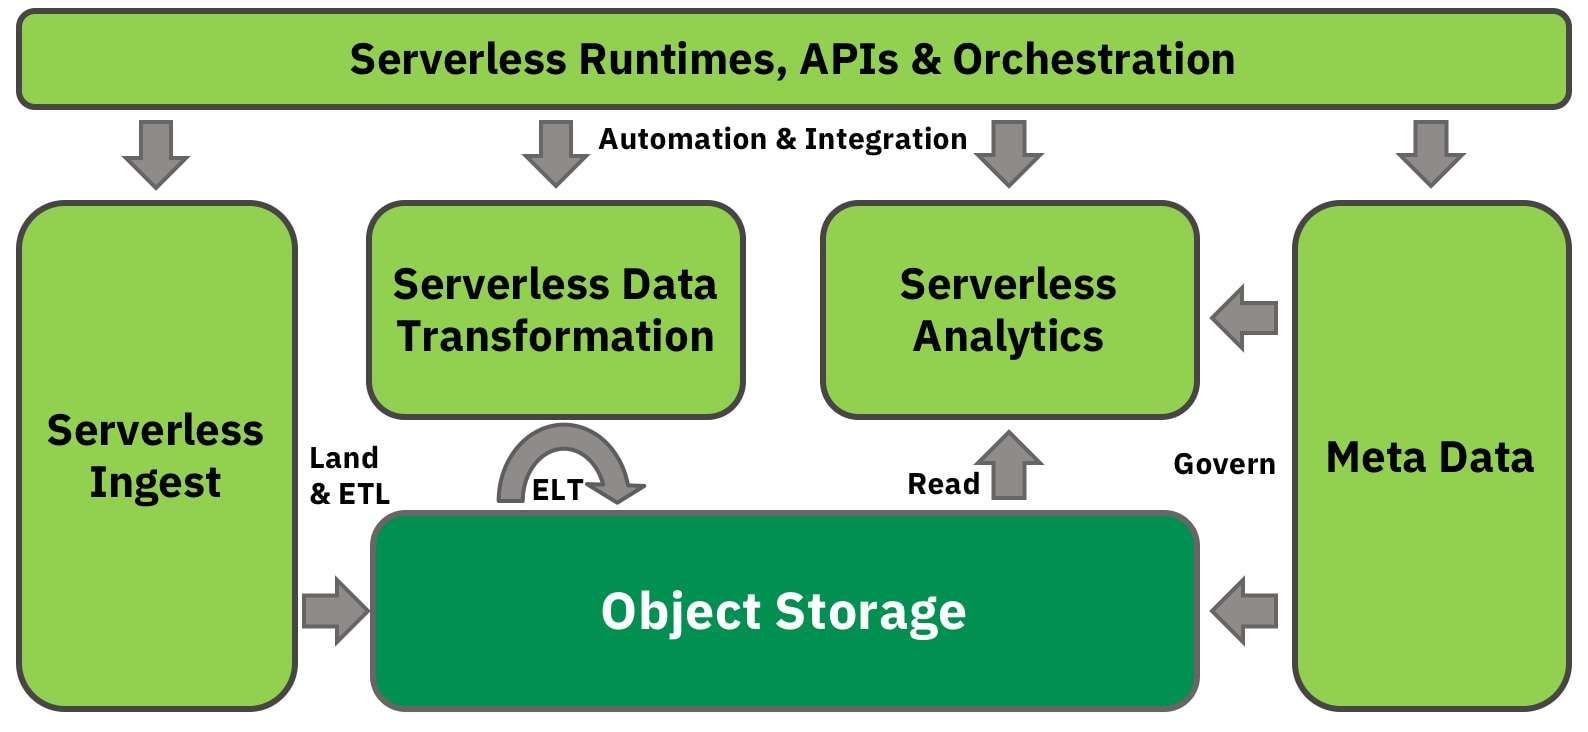 A serverless data and analytics platform